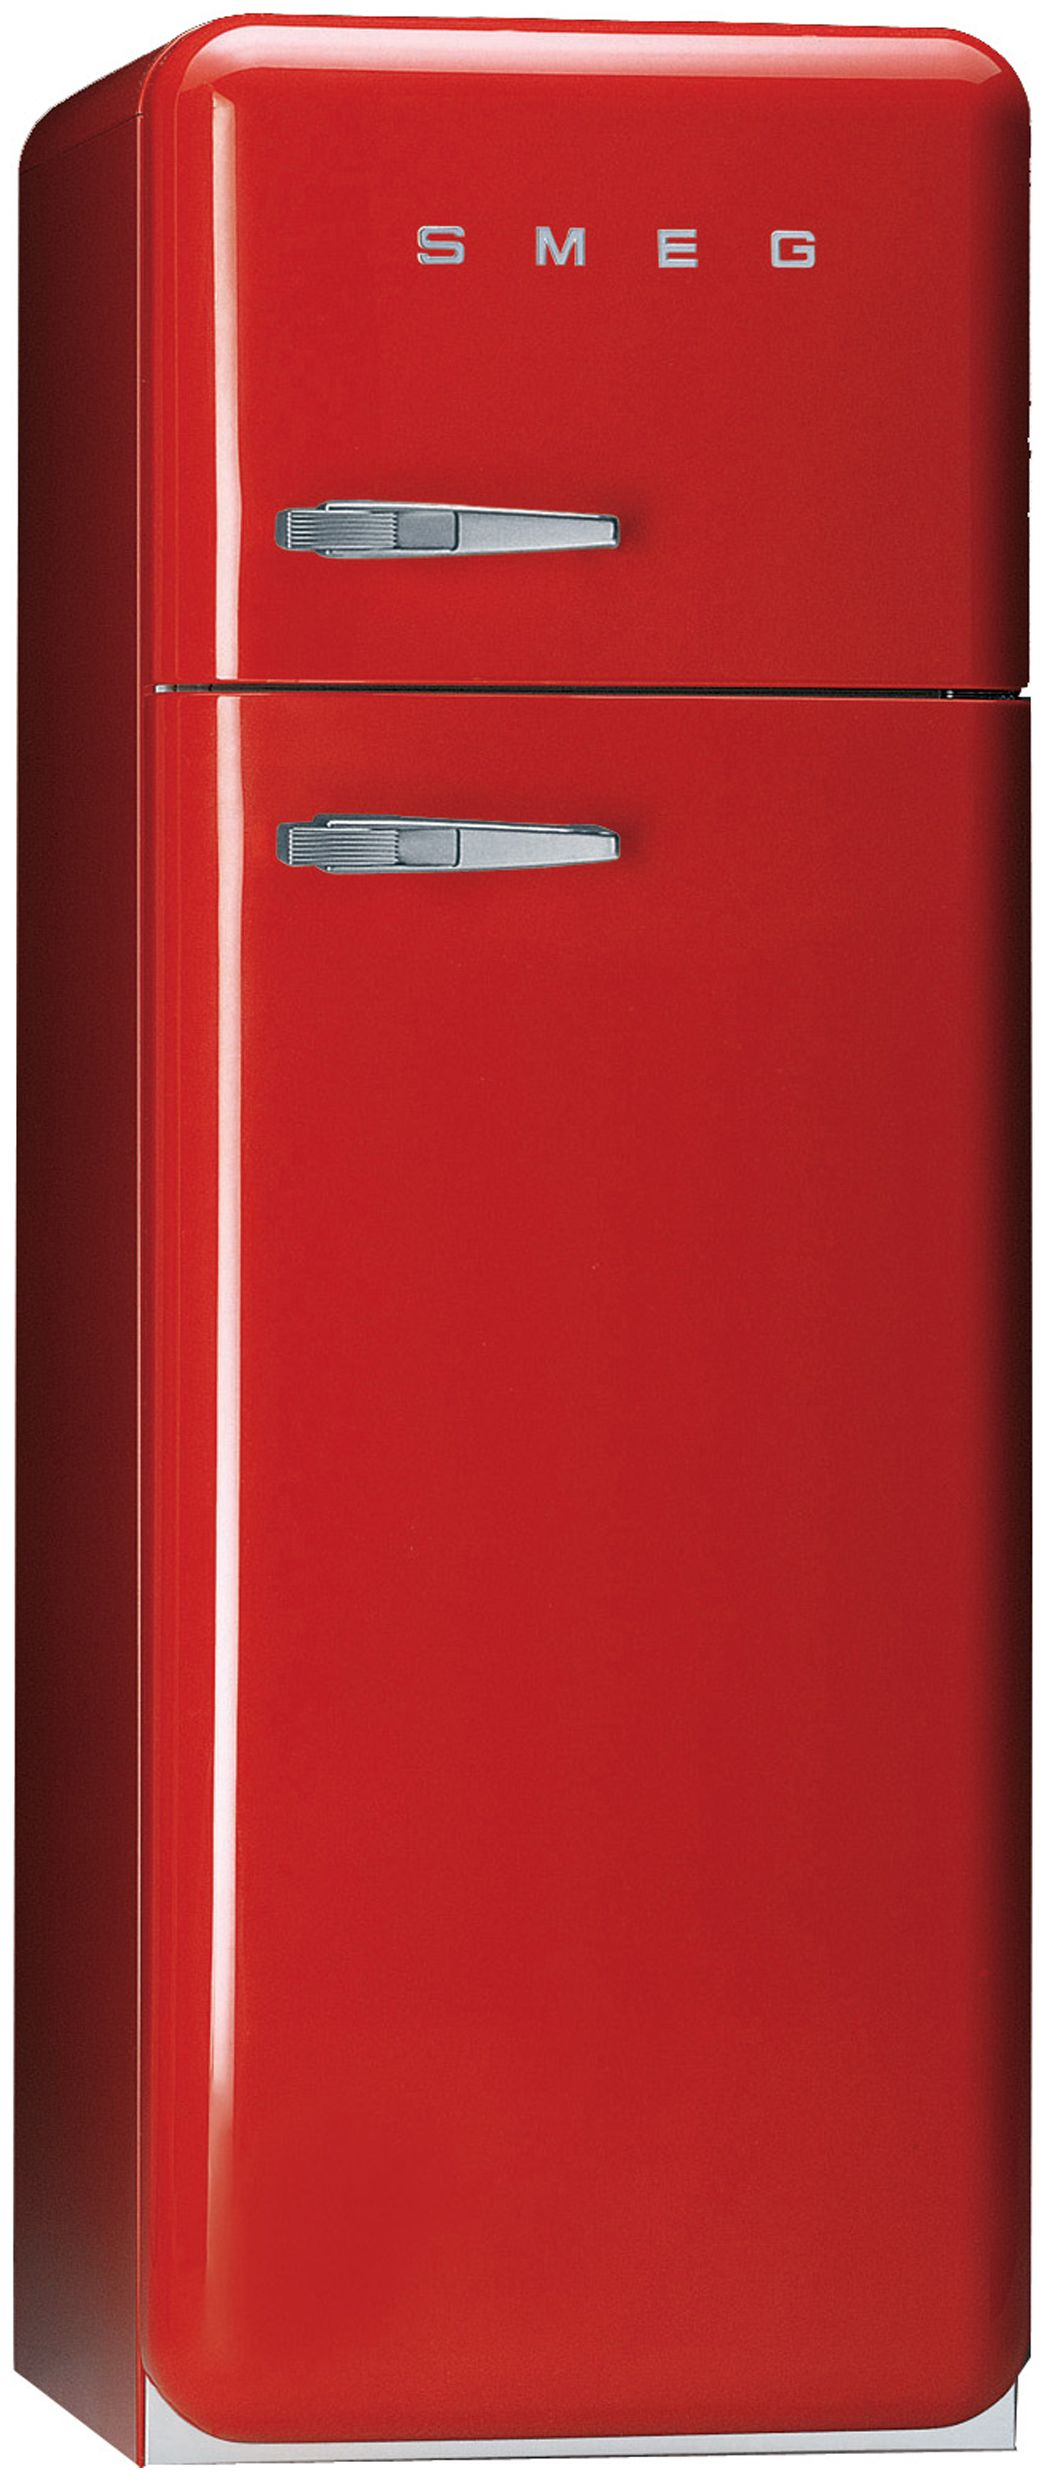 Yellow Fridge Freezer This Red Fridge Has Been In My Dreams For Looooooong Time